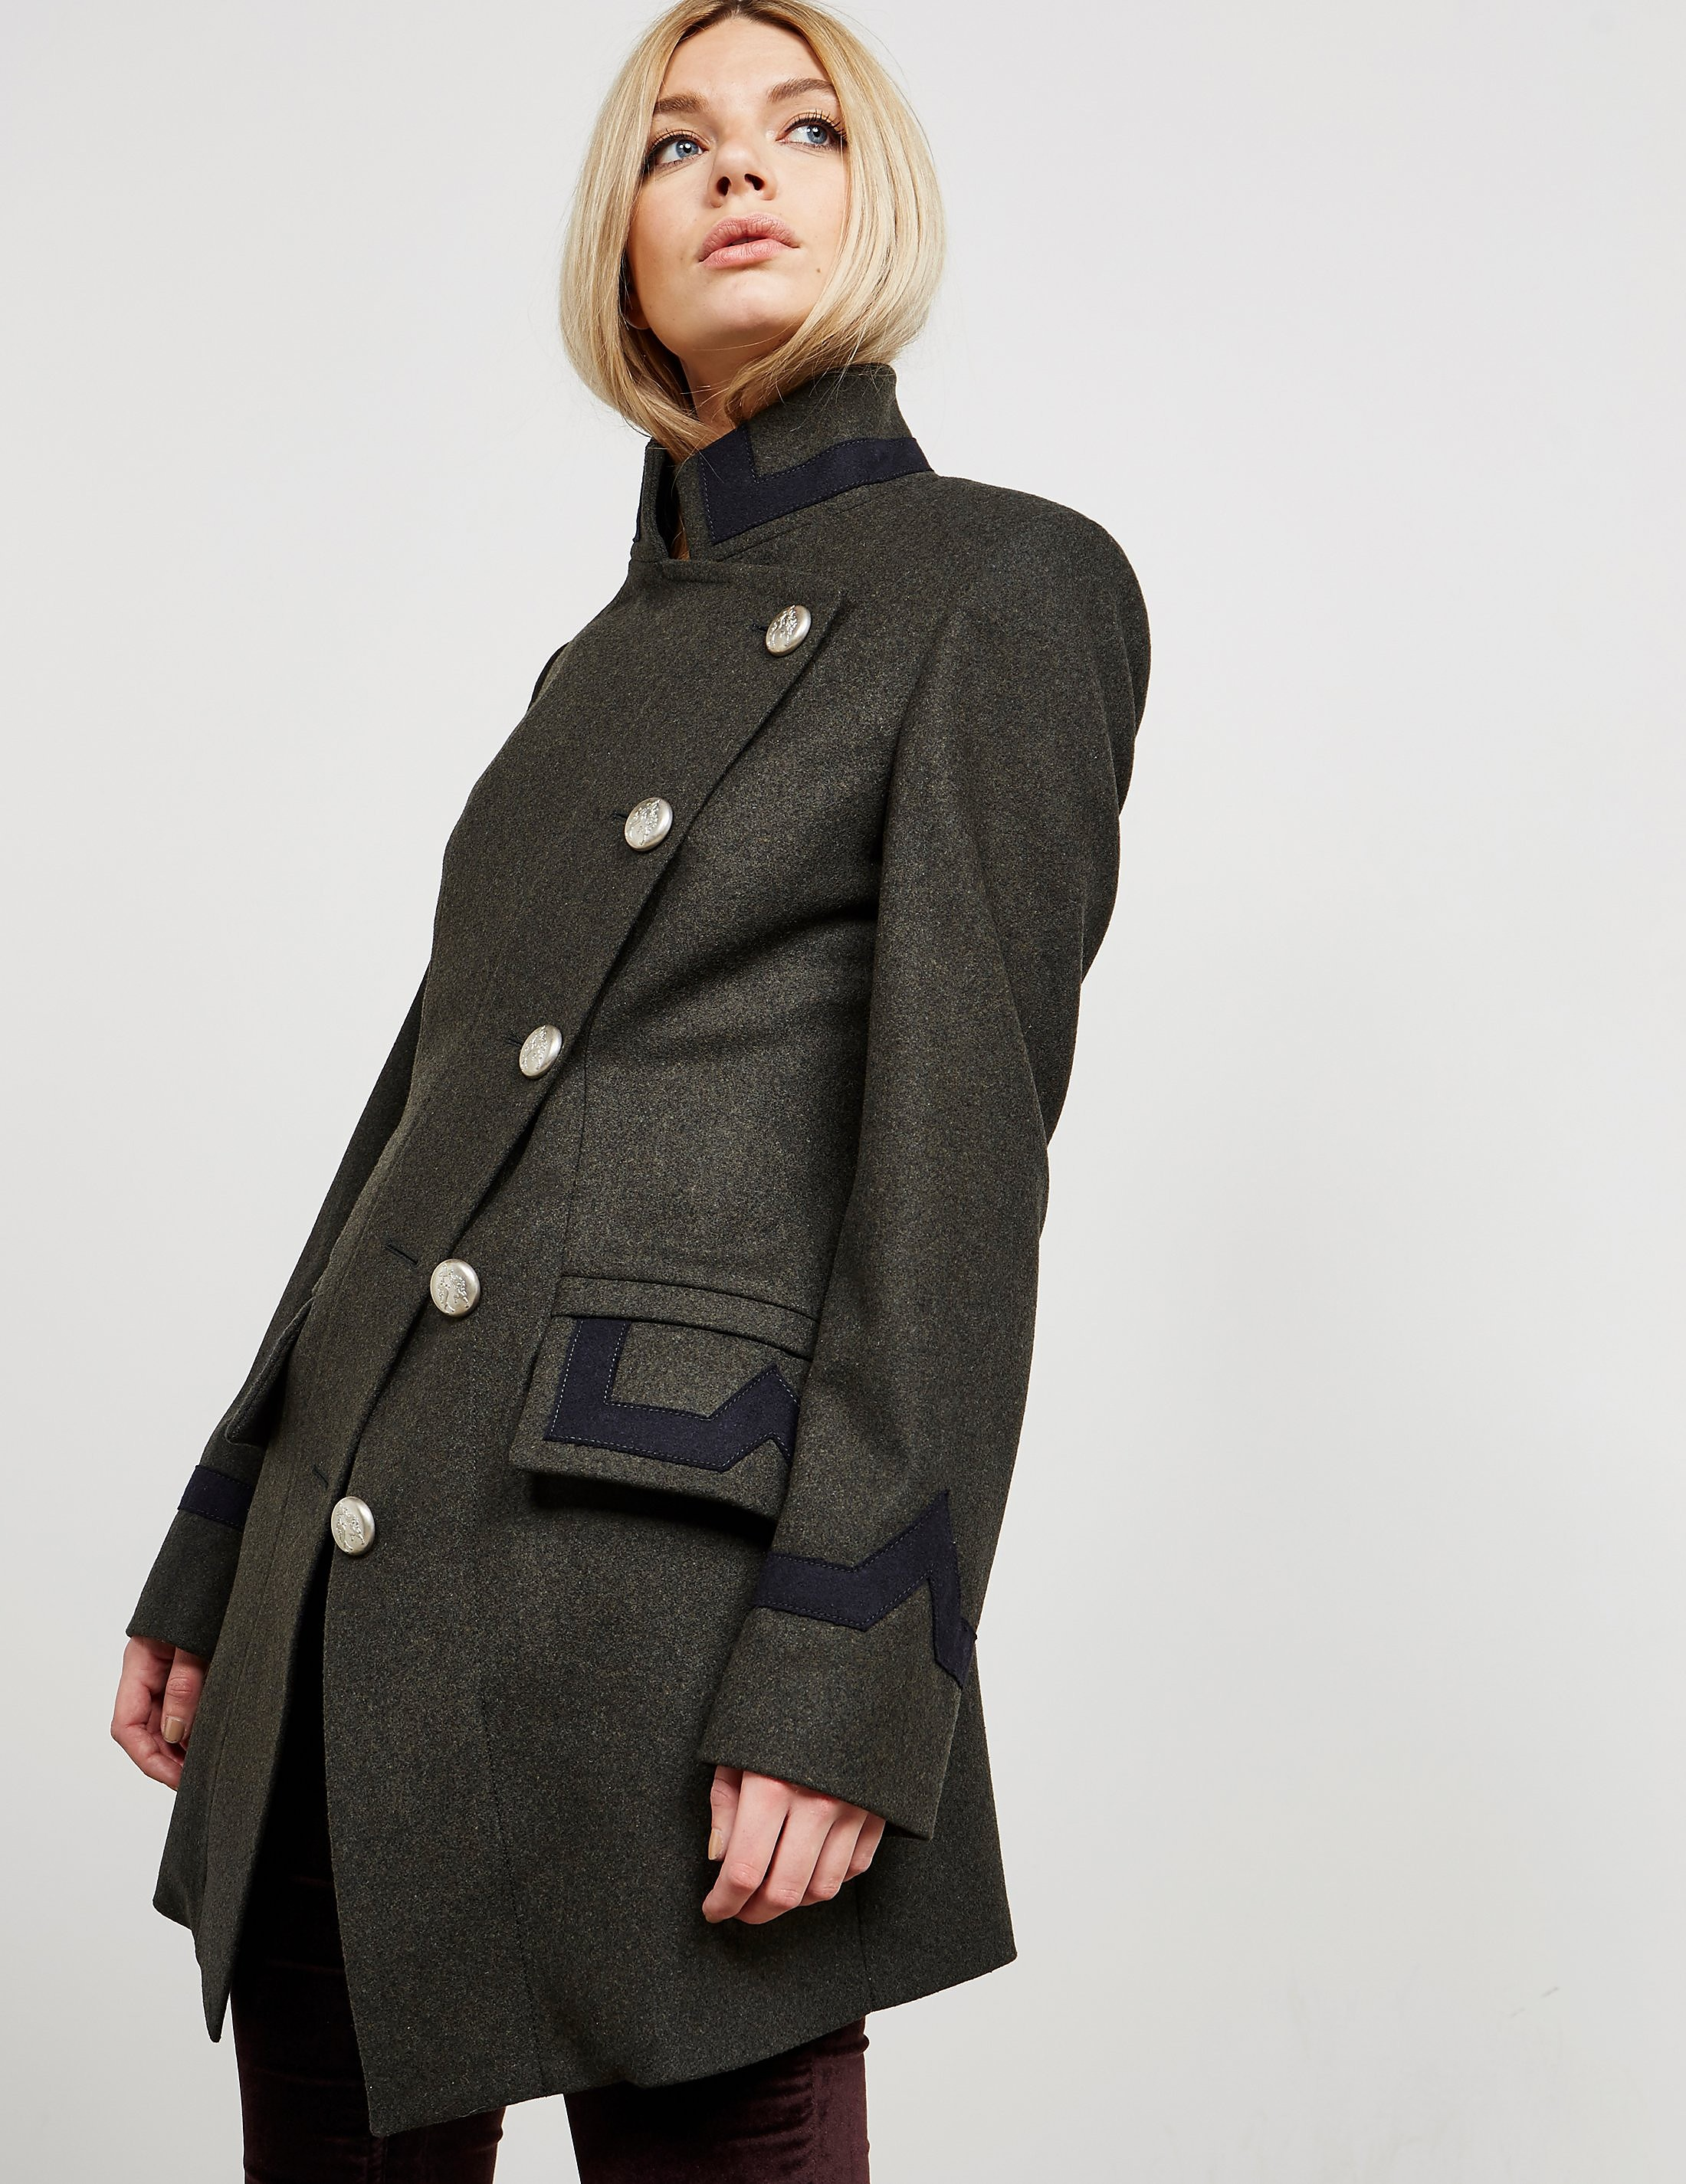 Vivienne Westwood Anglomania State Coat